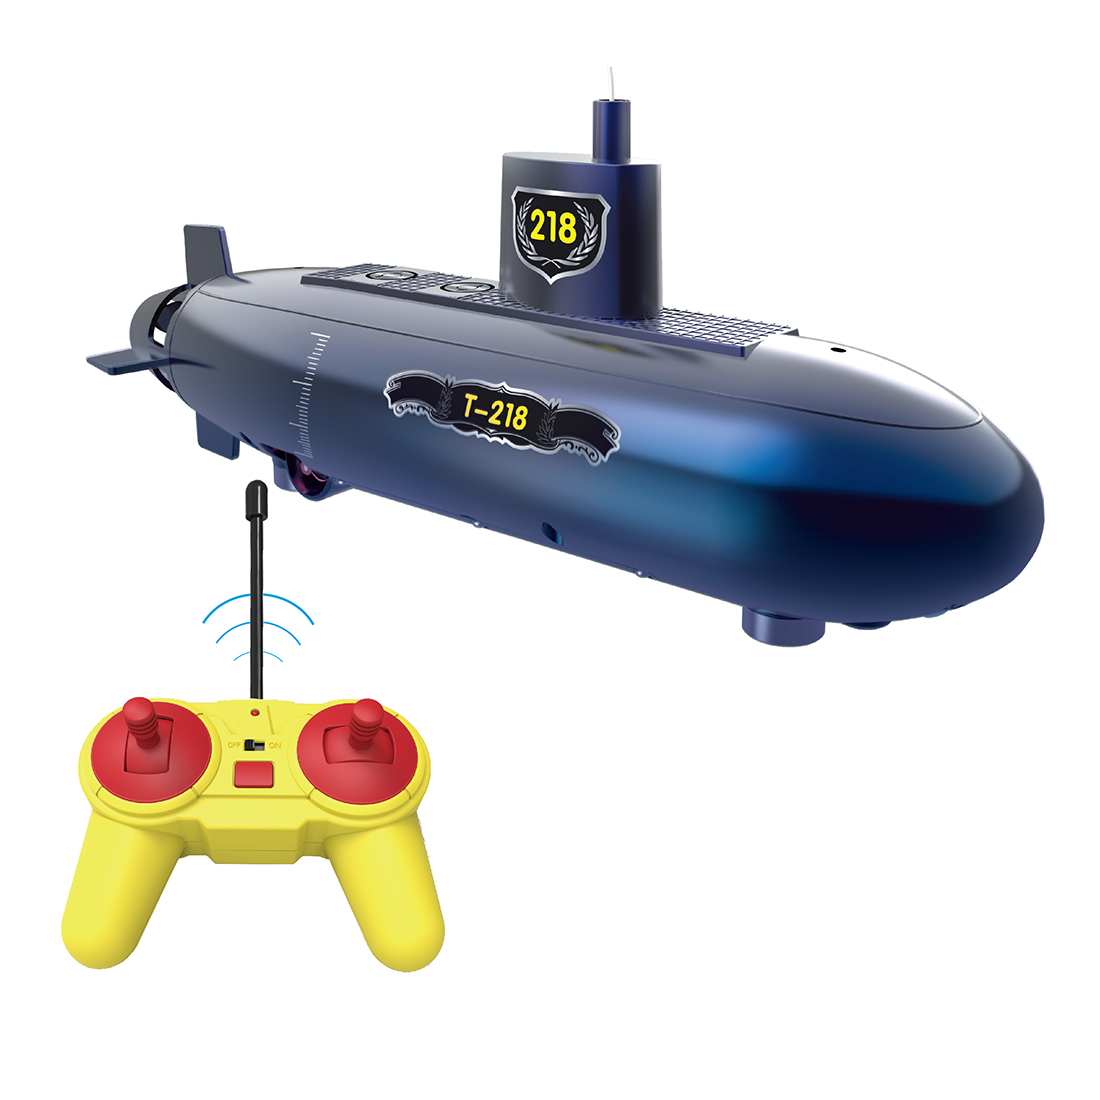 Submarine DIY Science Educational Stem Toys for Children Learning Science Interest Development science education